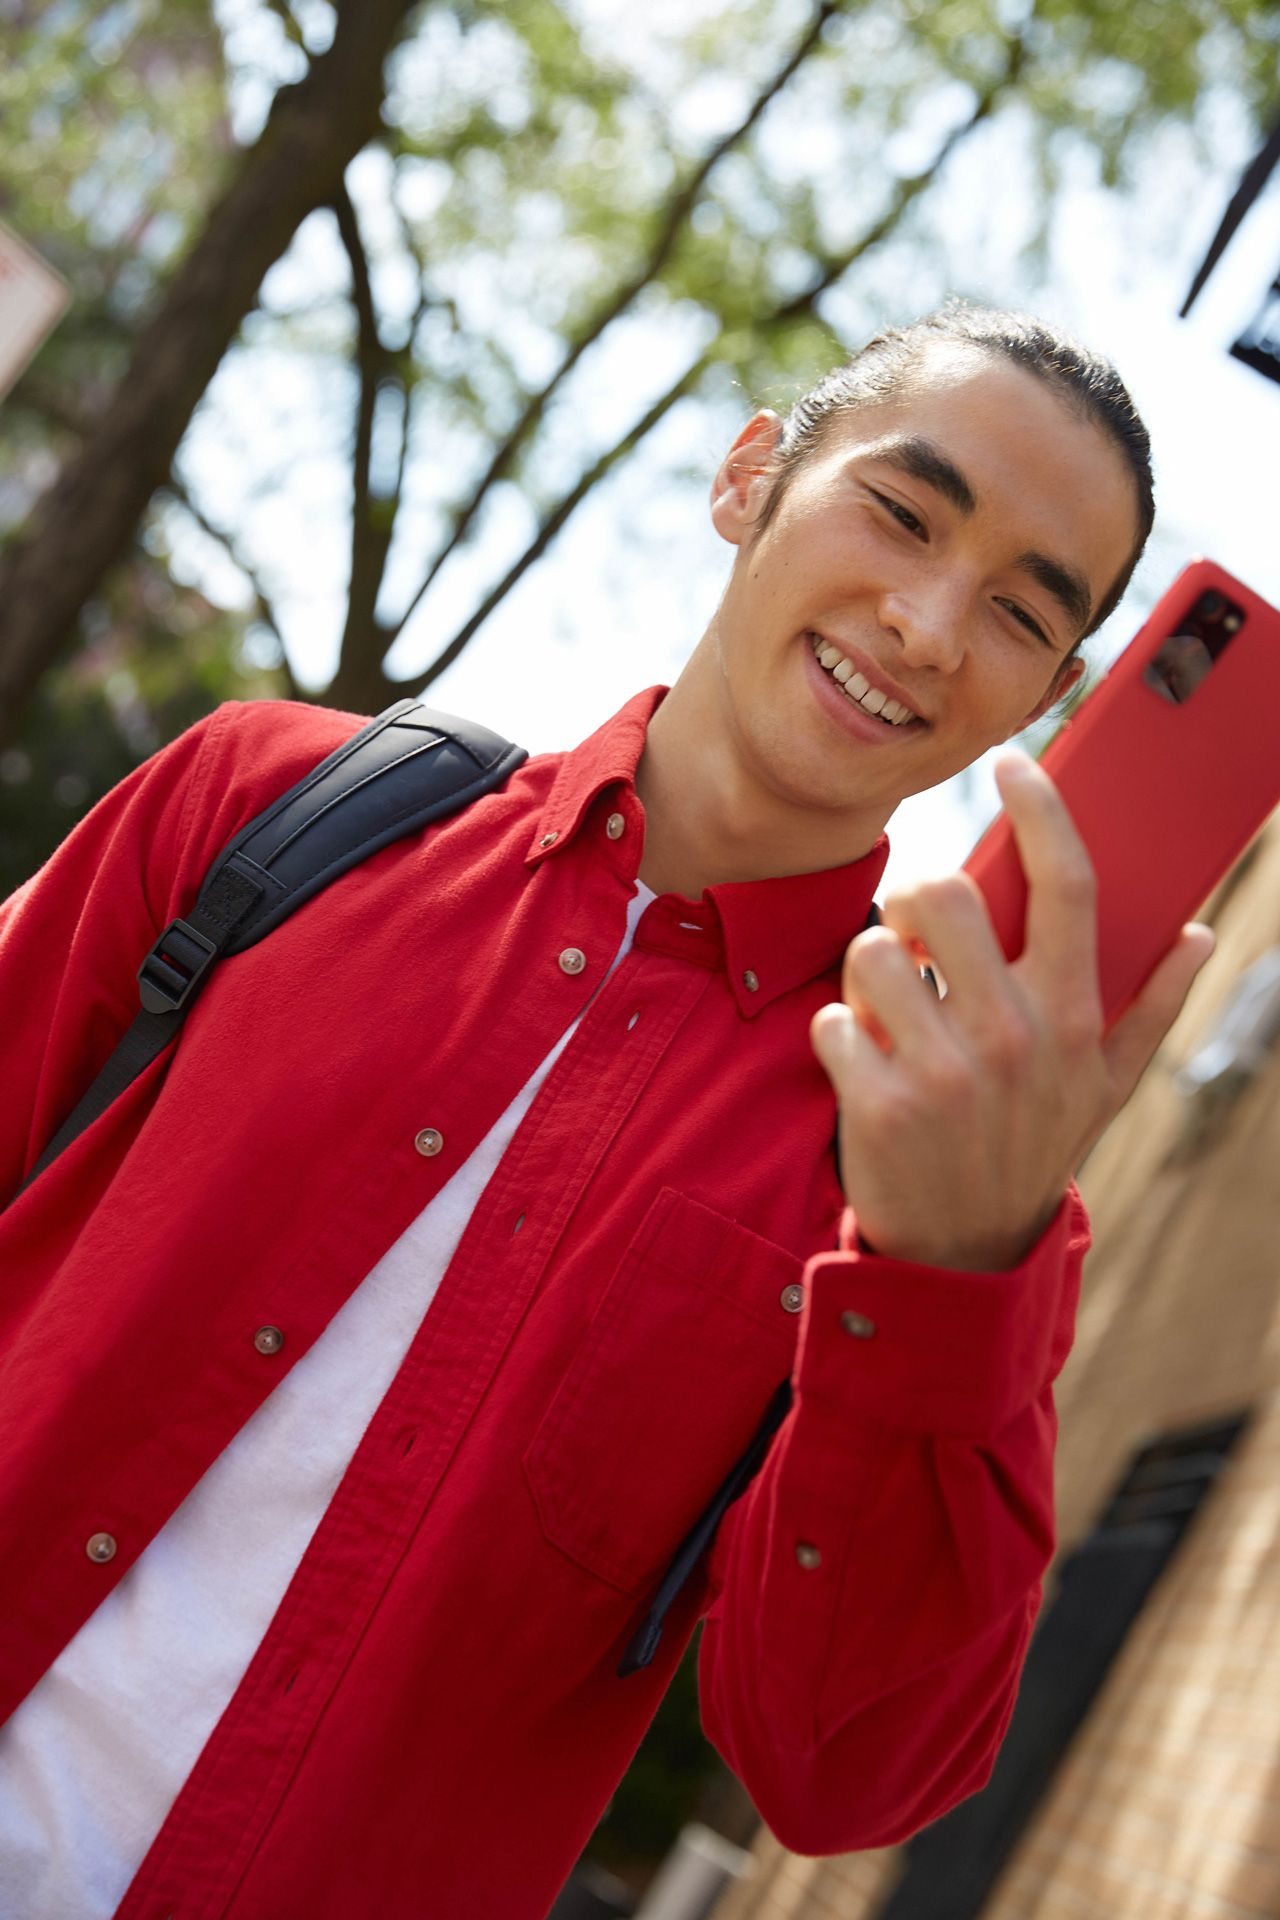 asian male model smiling looking at red smartphone wearing red shirt photographed by Oumayma B Tanfous for Samsung phone campaign